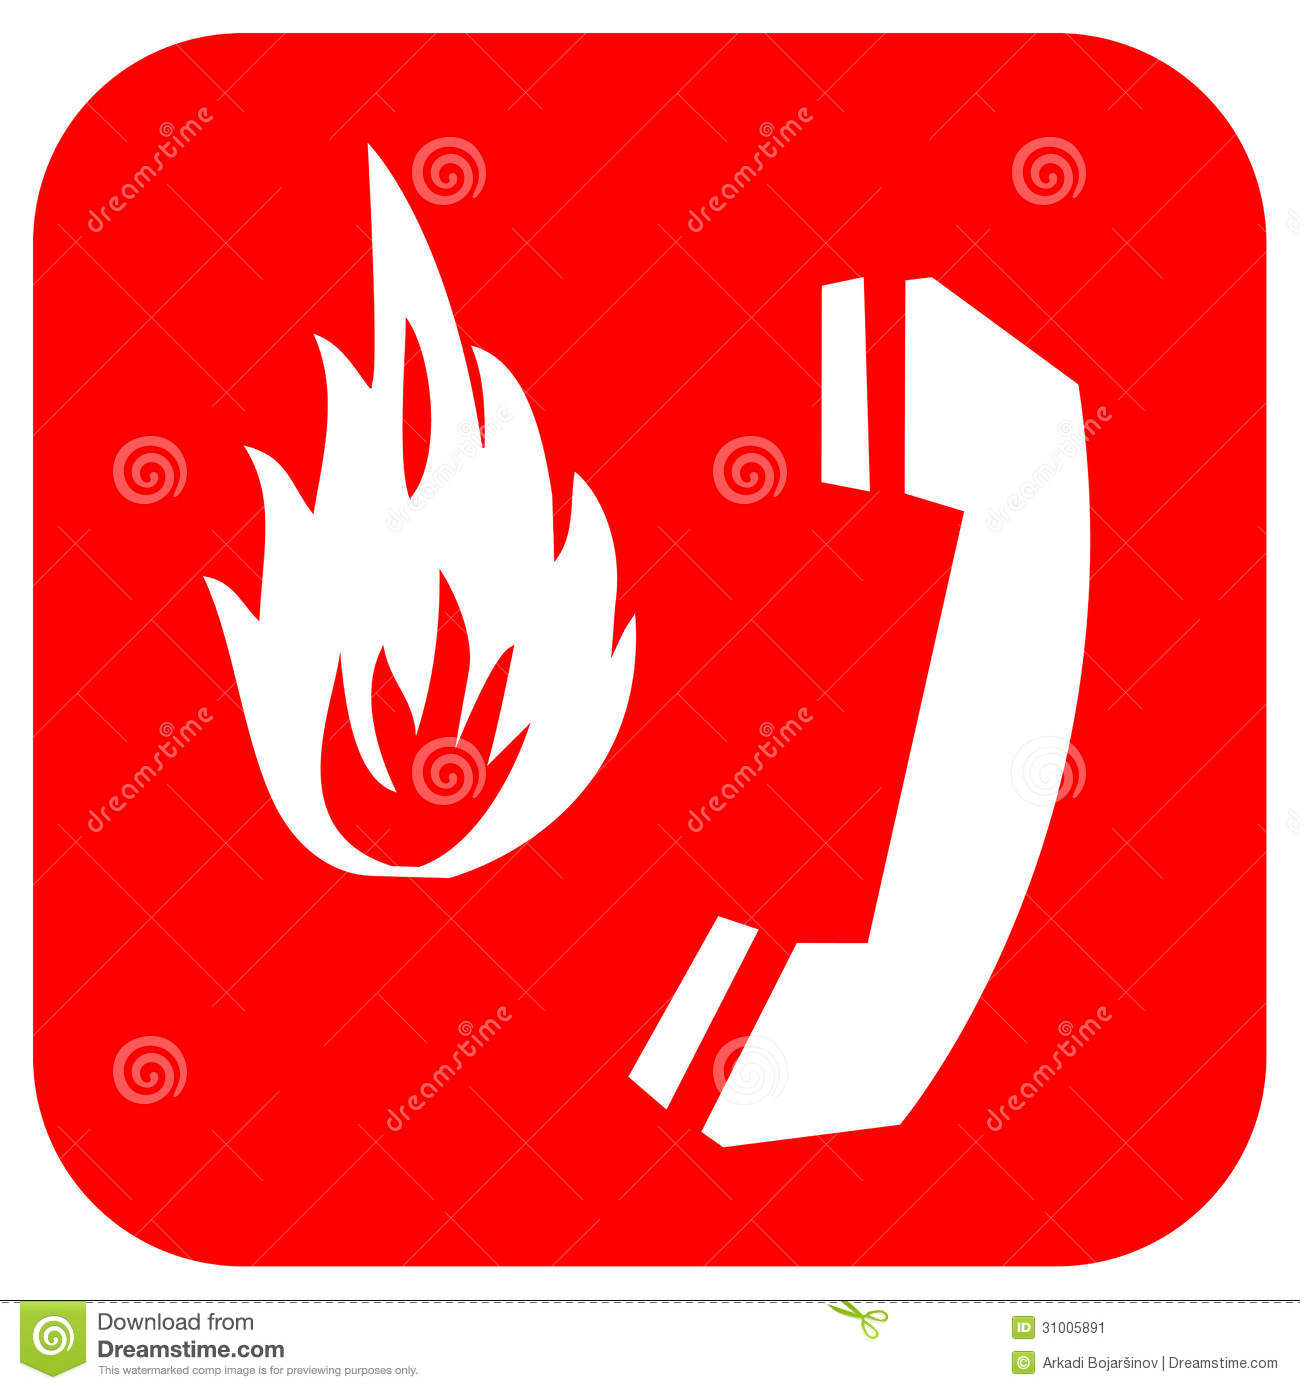 Fire Safety Plan Symbols in addition Sai clip art317 likewise Watch in addition Stock Images Vector Fire Alarm Sign Present Isolated Red Background Image32939224 furthermore Sai clip art317. on fire alarm control panel clip art